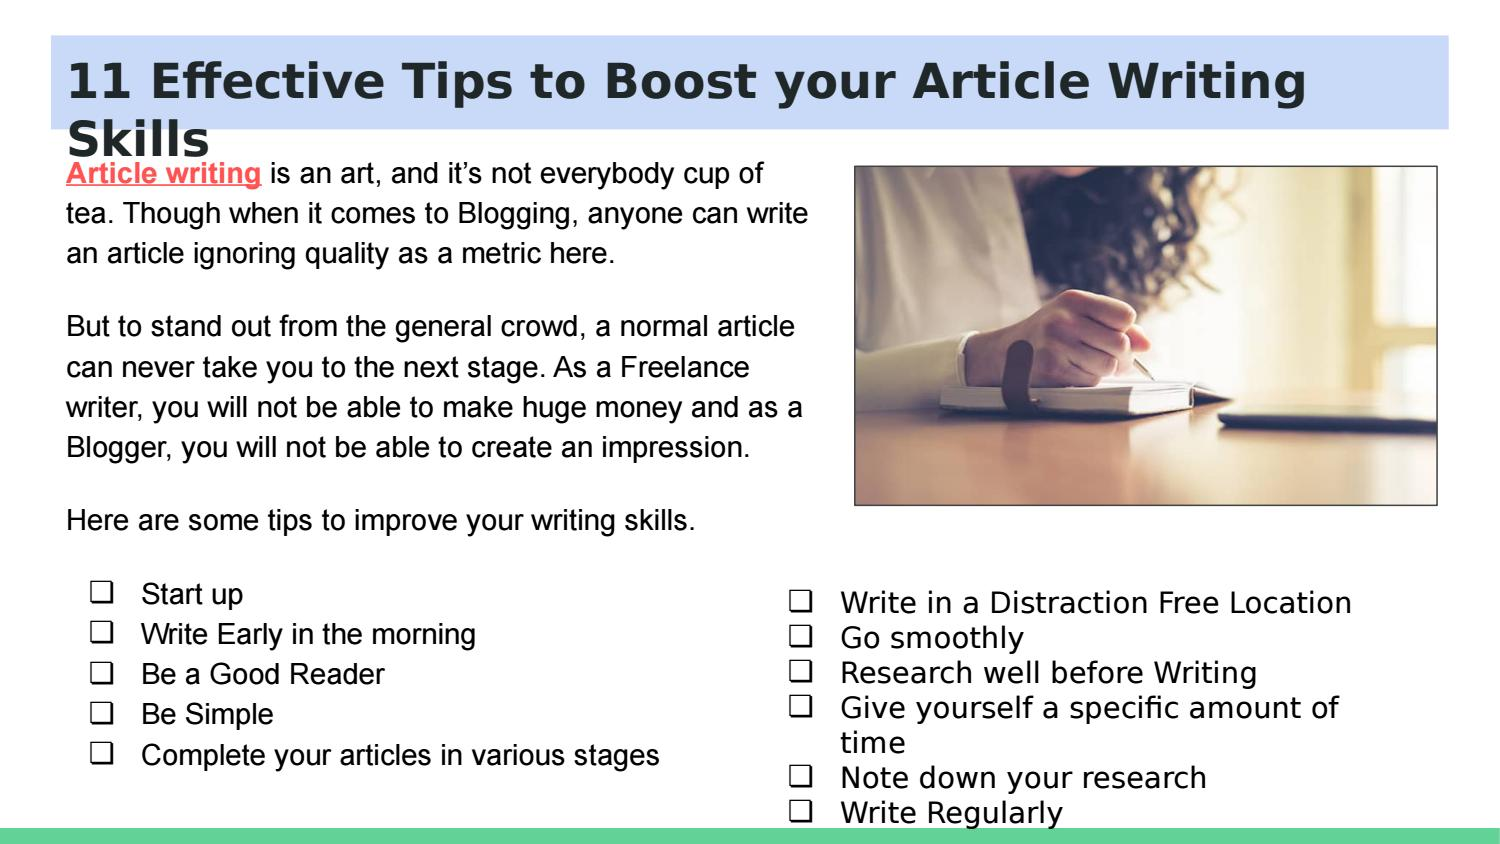 6 Effective Tips to Boost your Article Writing Skills by Barry